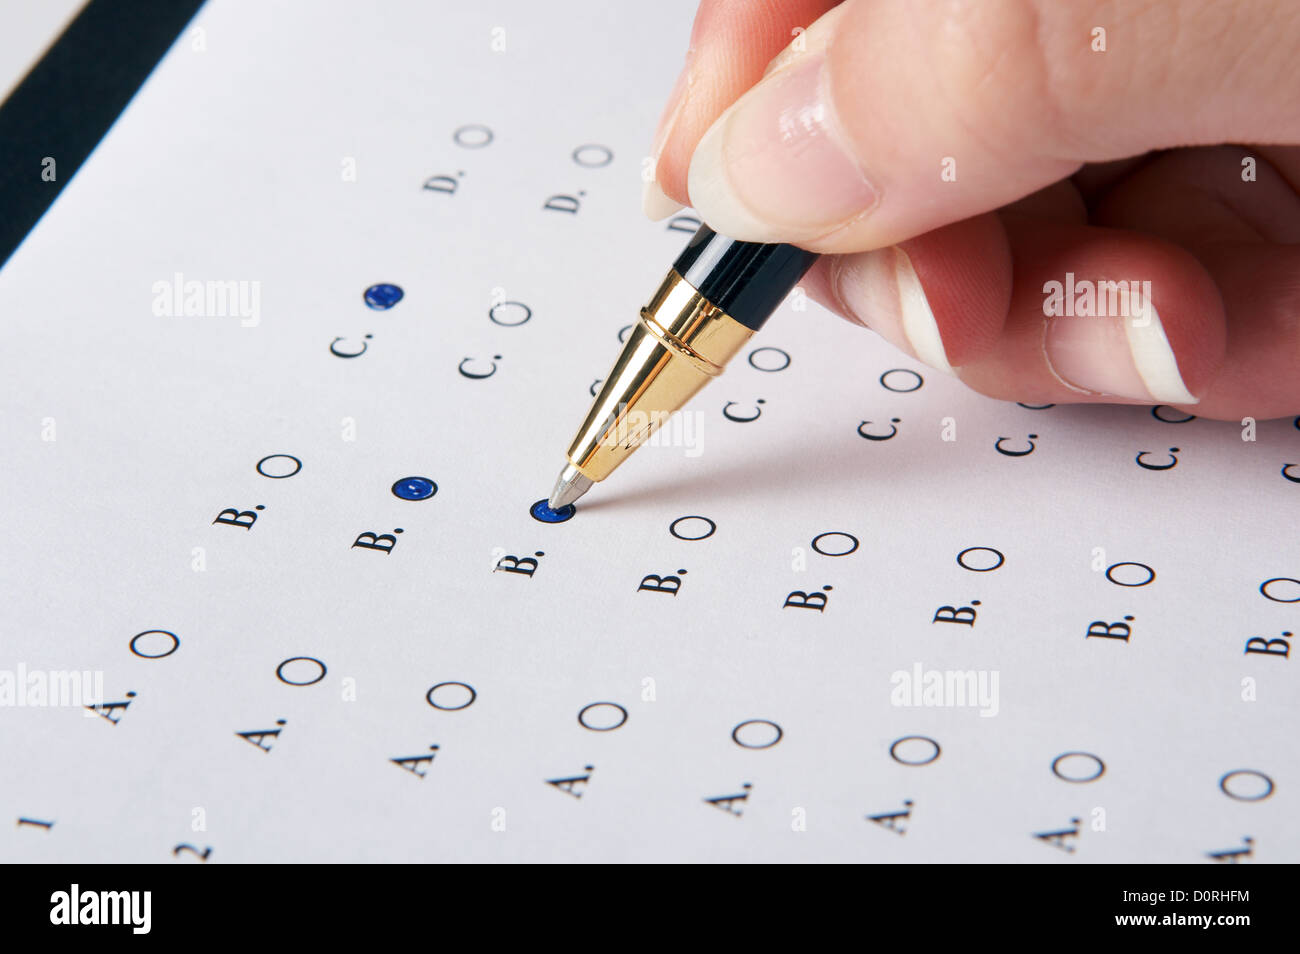 Hand filling in an evaluation form with a pen - Stock Image